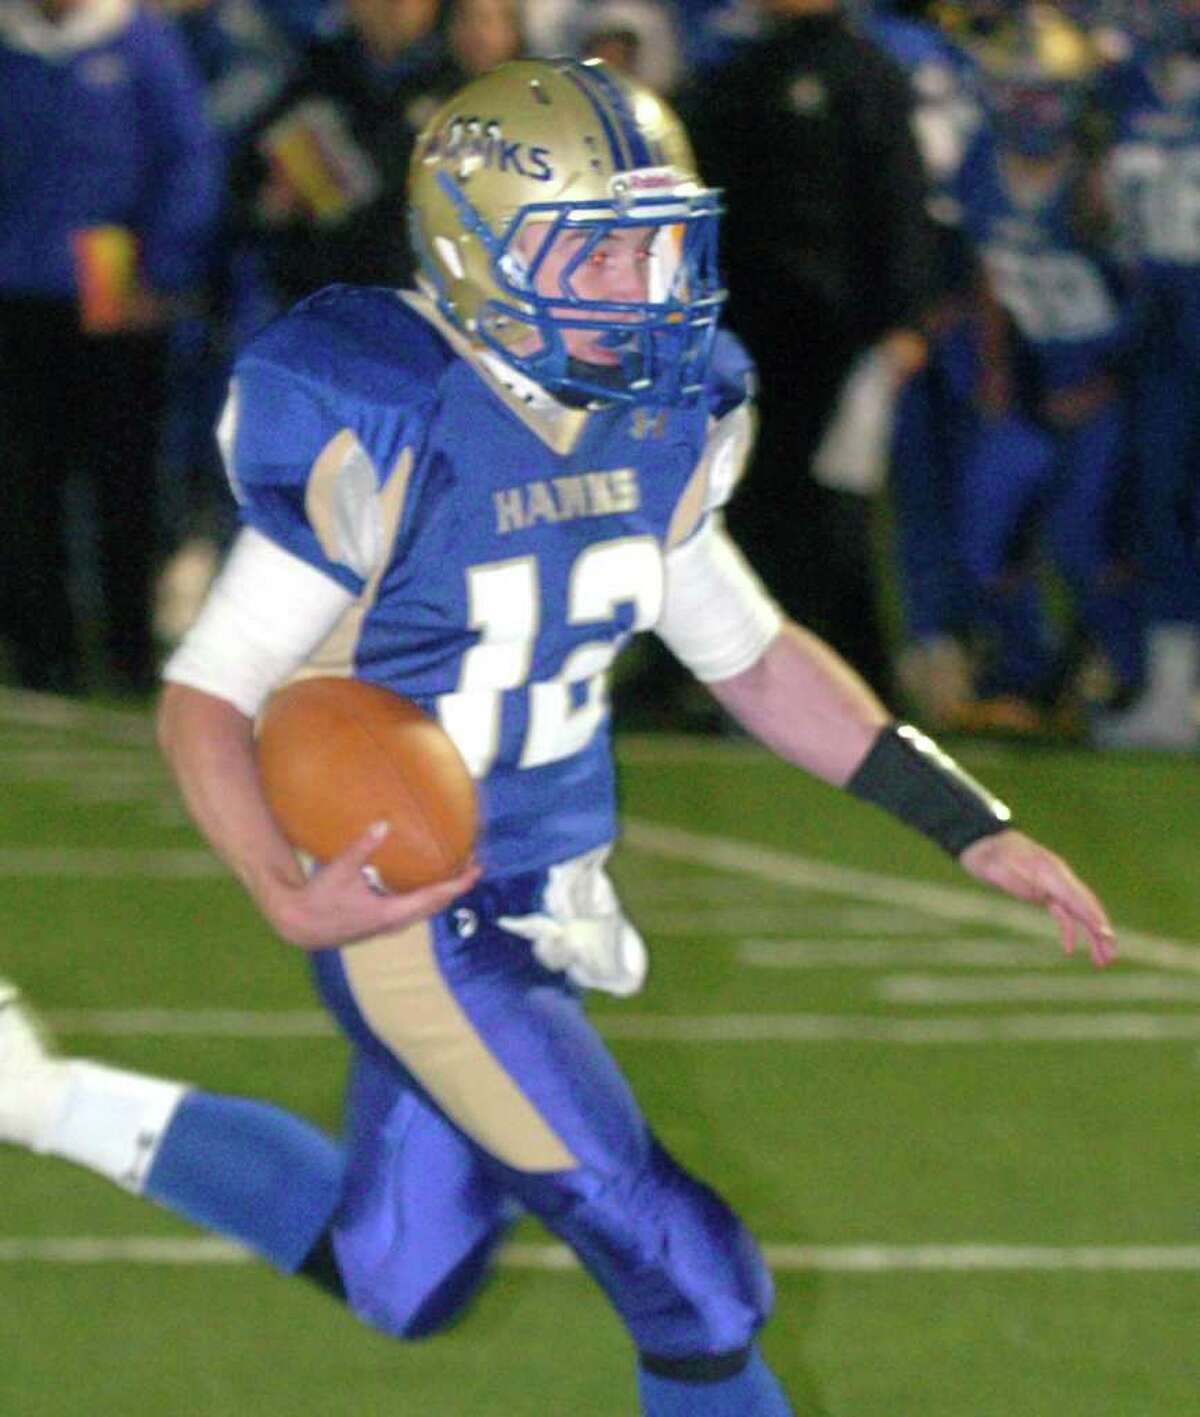 Newtown's 12, Dan Hebert, makes a touchdown during the football game against Bunnell at Southbury Oct, 22, 2010.